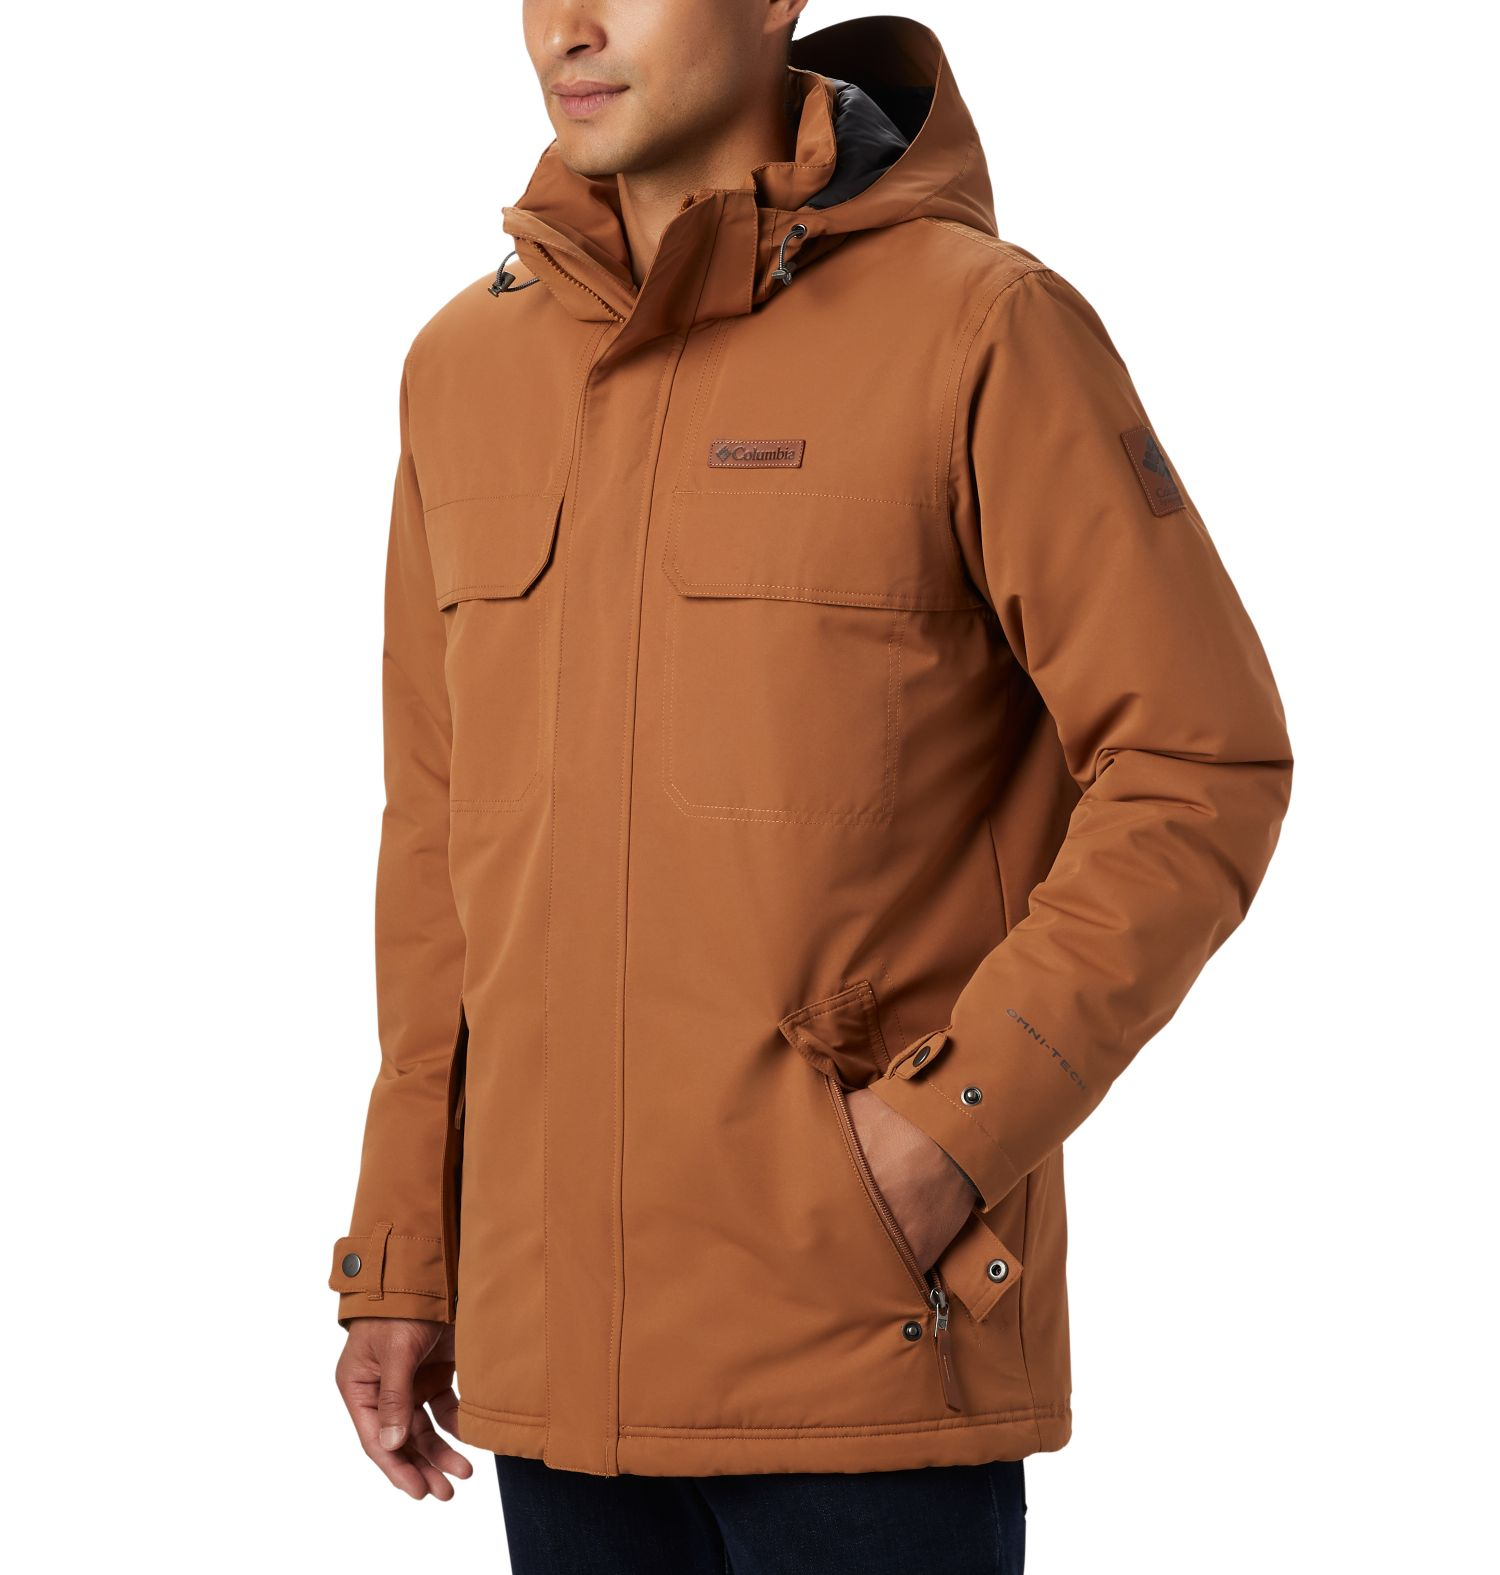 CHAQUETON RUGGED PATH 100% POLYESTER 160G Omni-HEAT THERMAL REFLECTIVE INSULATION Omni-TECH WATERPROOF BREATHABLE CAMEL BROWN